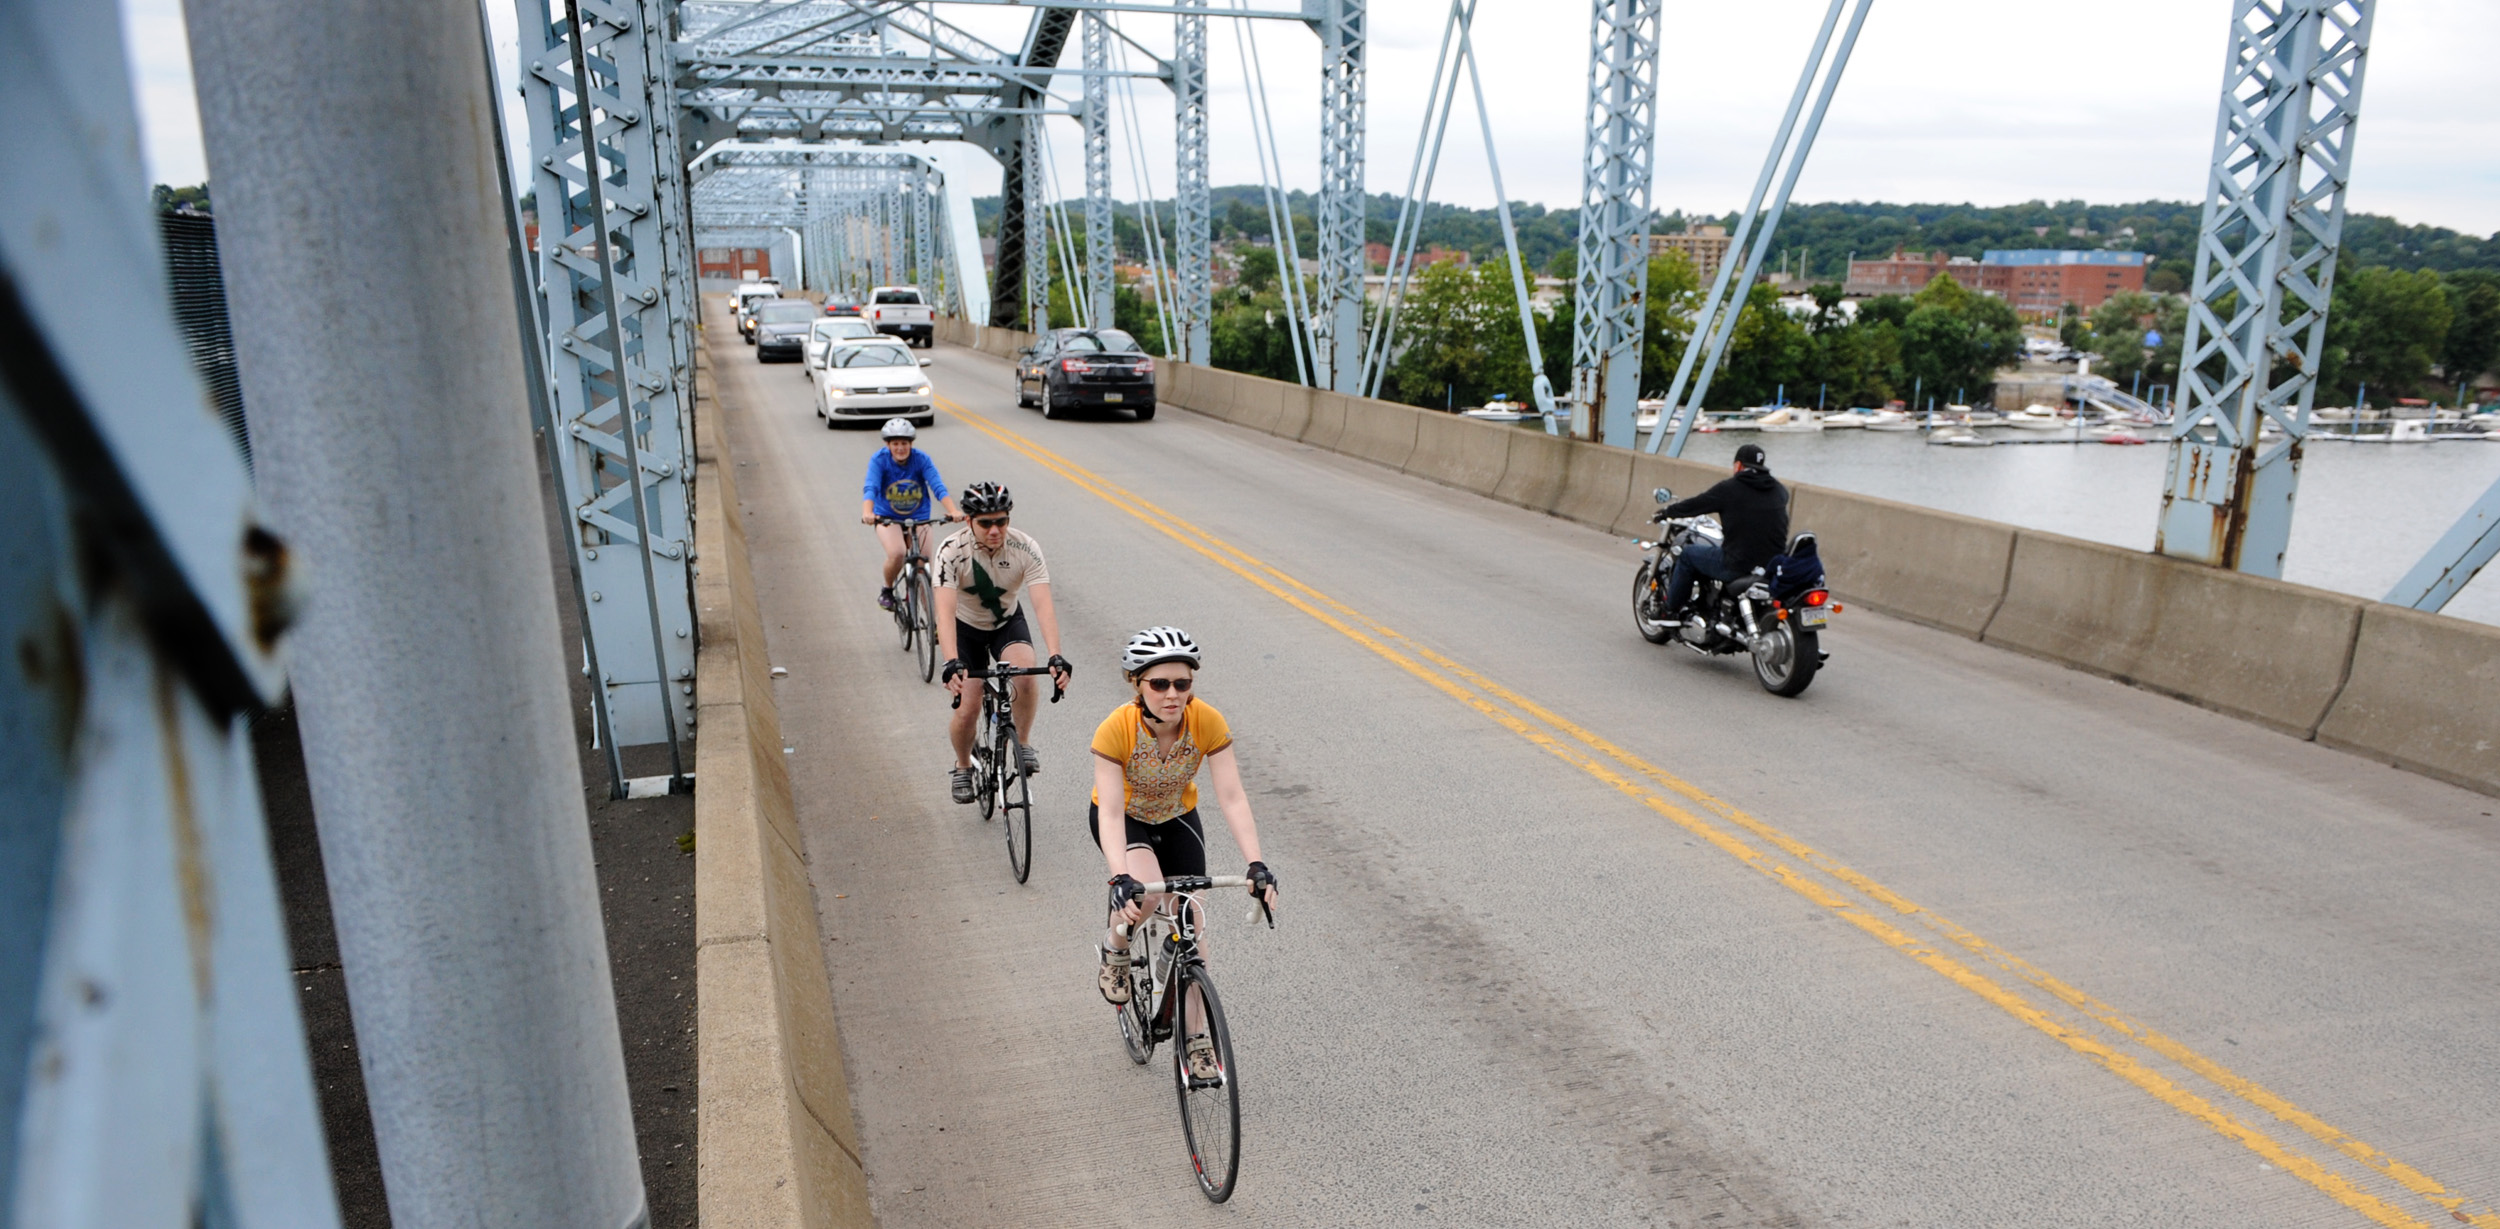 Allegheny Valley Cyclists member Erin Bridgen takes the lead with Sean Brigden and Danyelle Hooks as they bicycle through the 9th Street Bridge in New Kensington on Tuesday, Aug. 25, 2015.